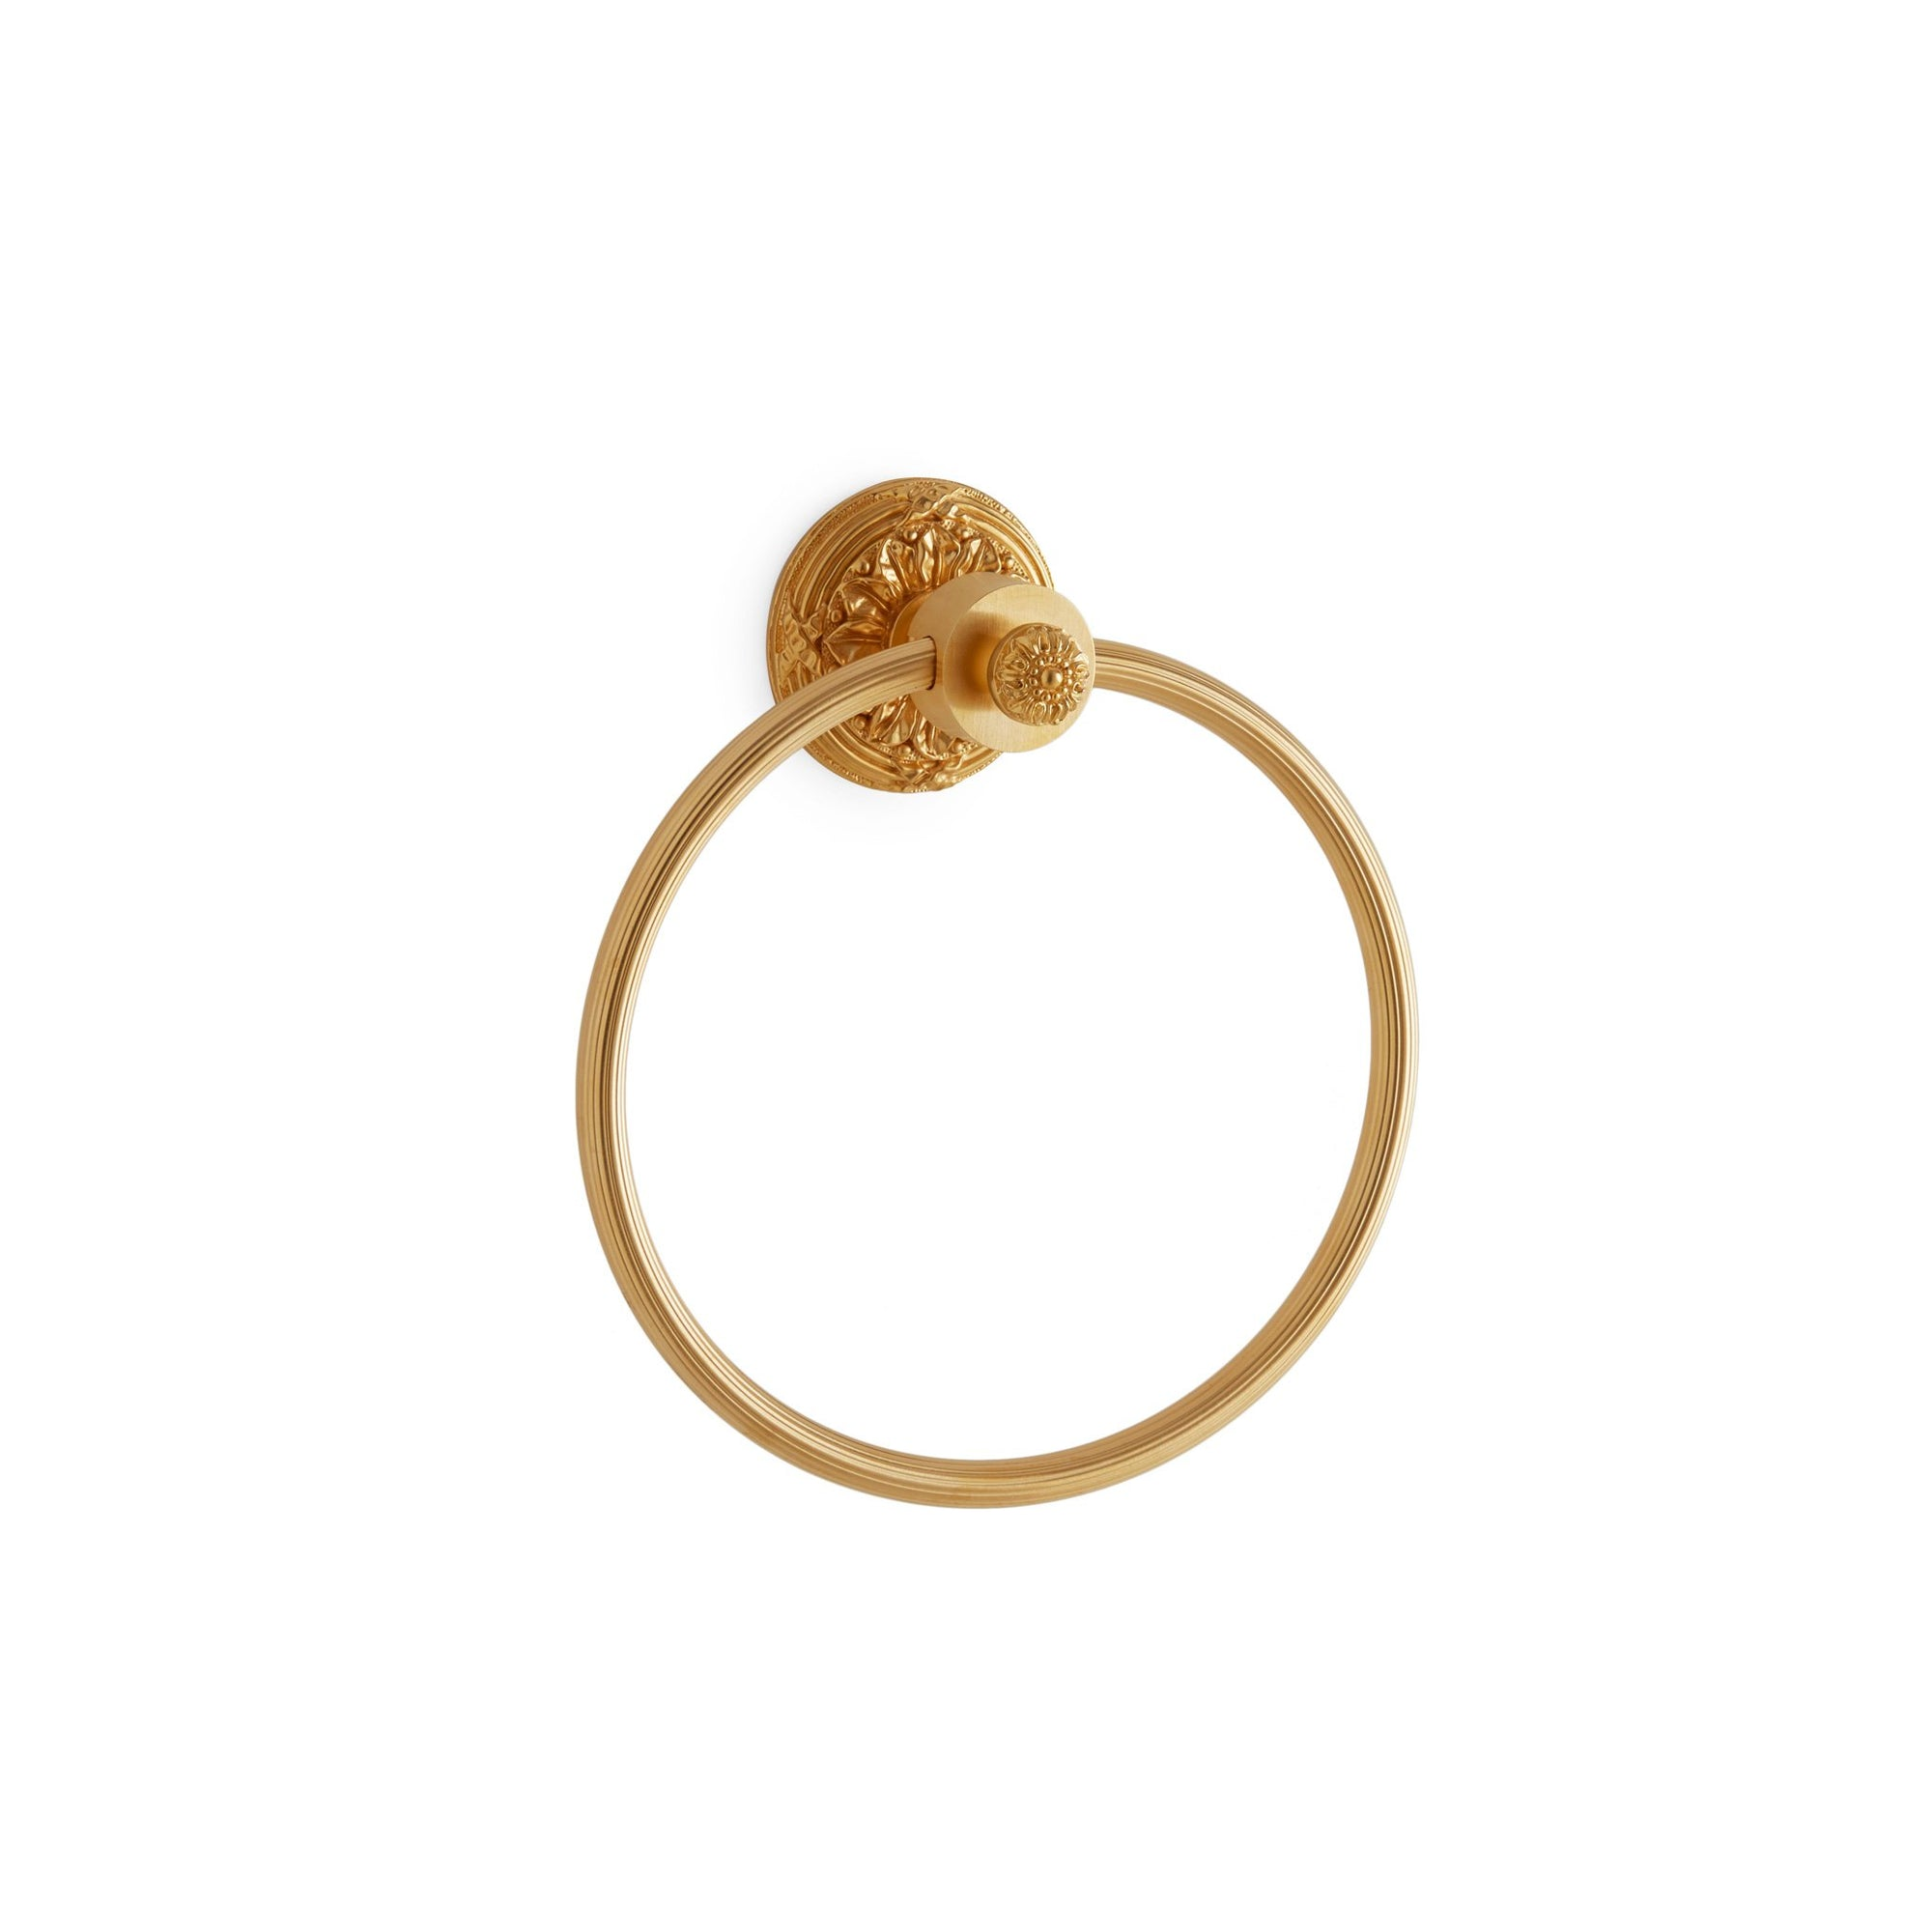 3434-GP Sherle Wagner International Ribbon & Reed Towel Ring in Gold Plate metal finish